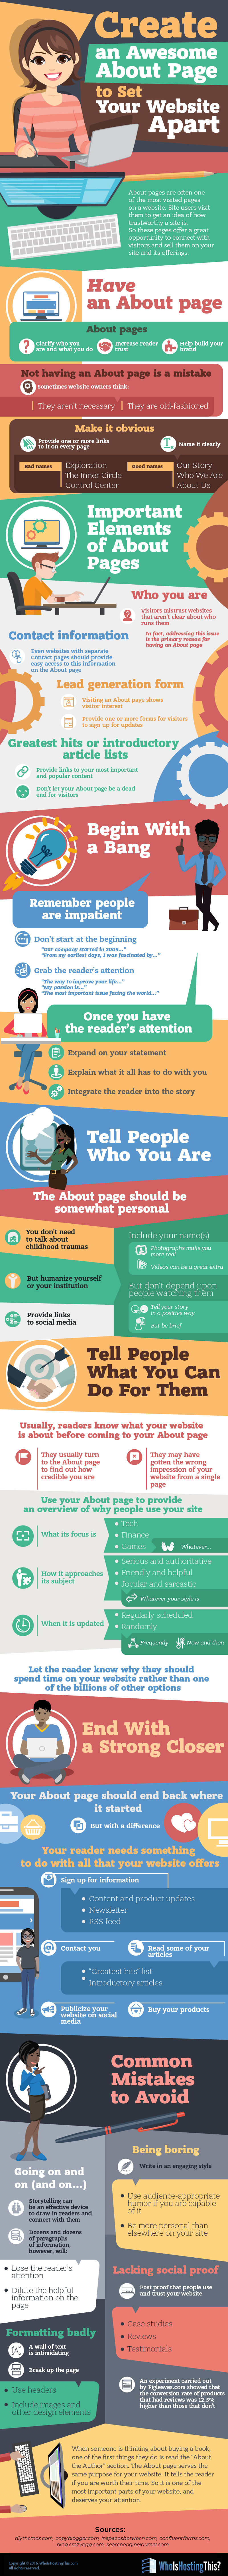 Infographic on creating About pages